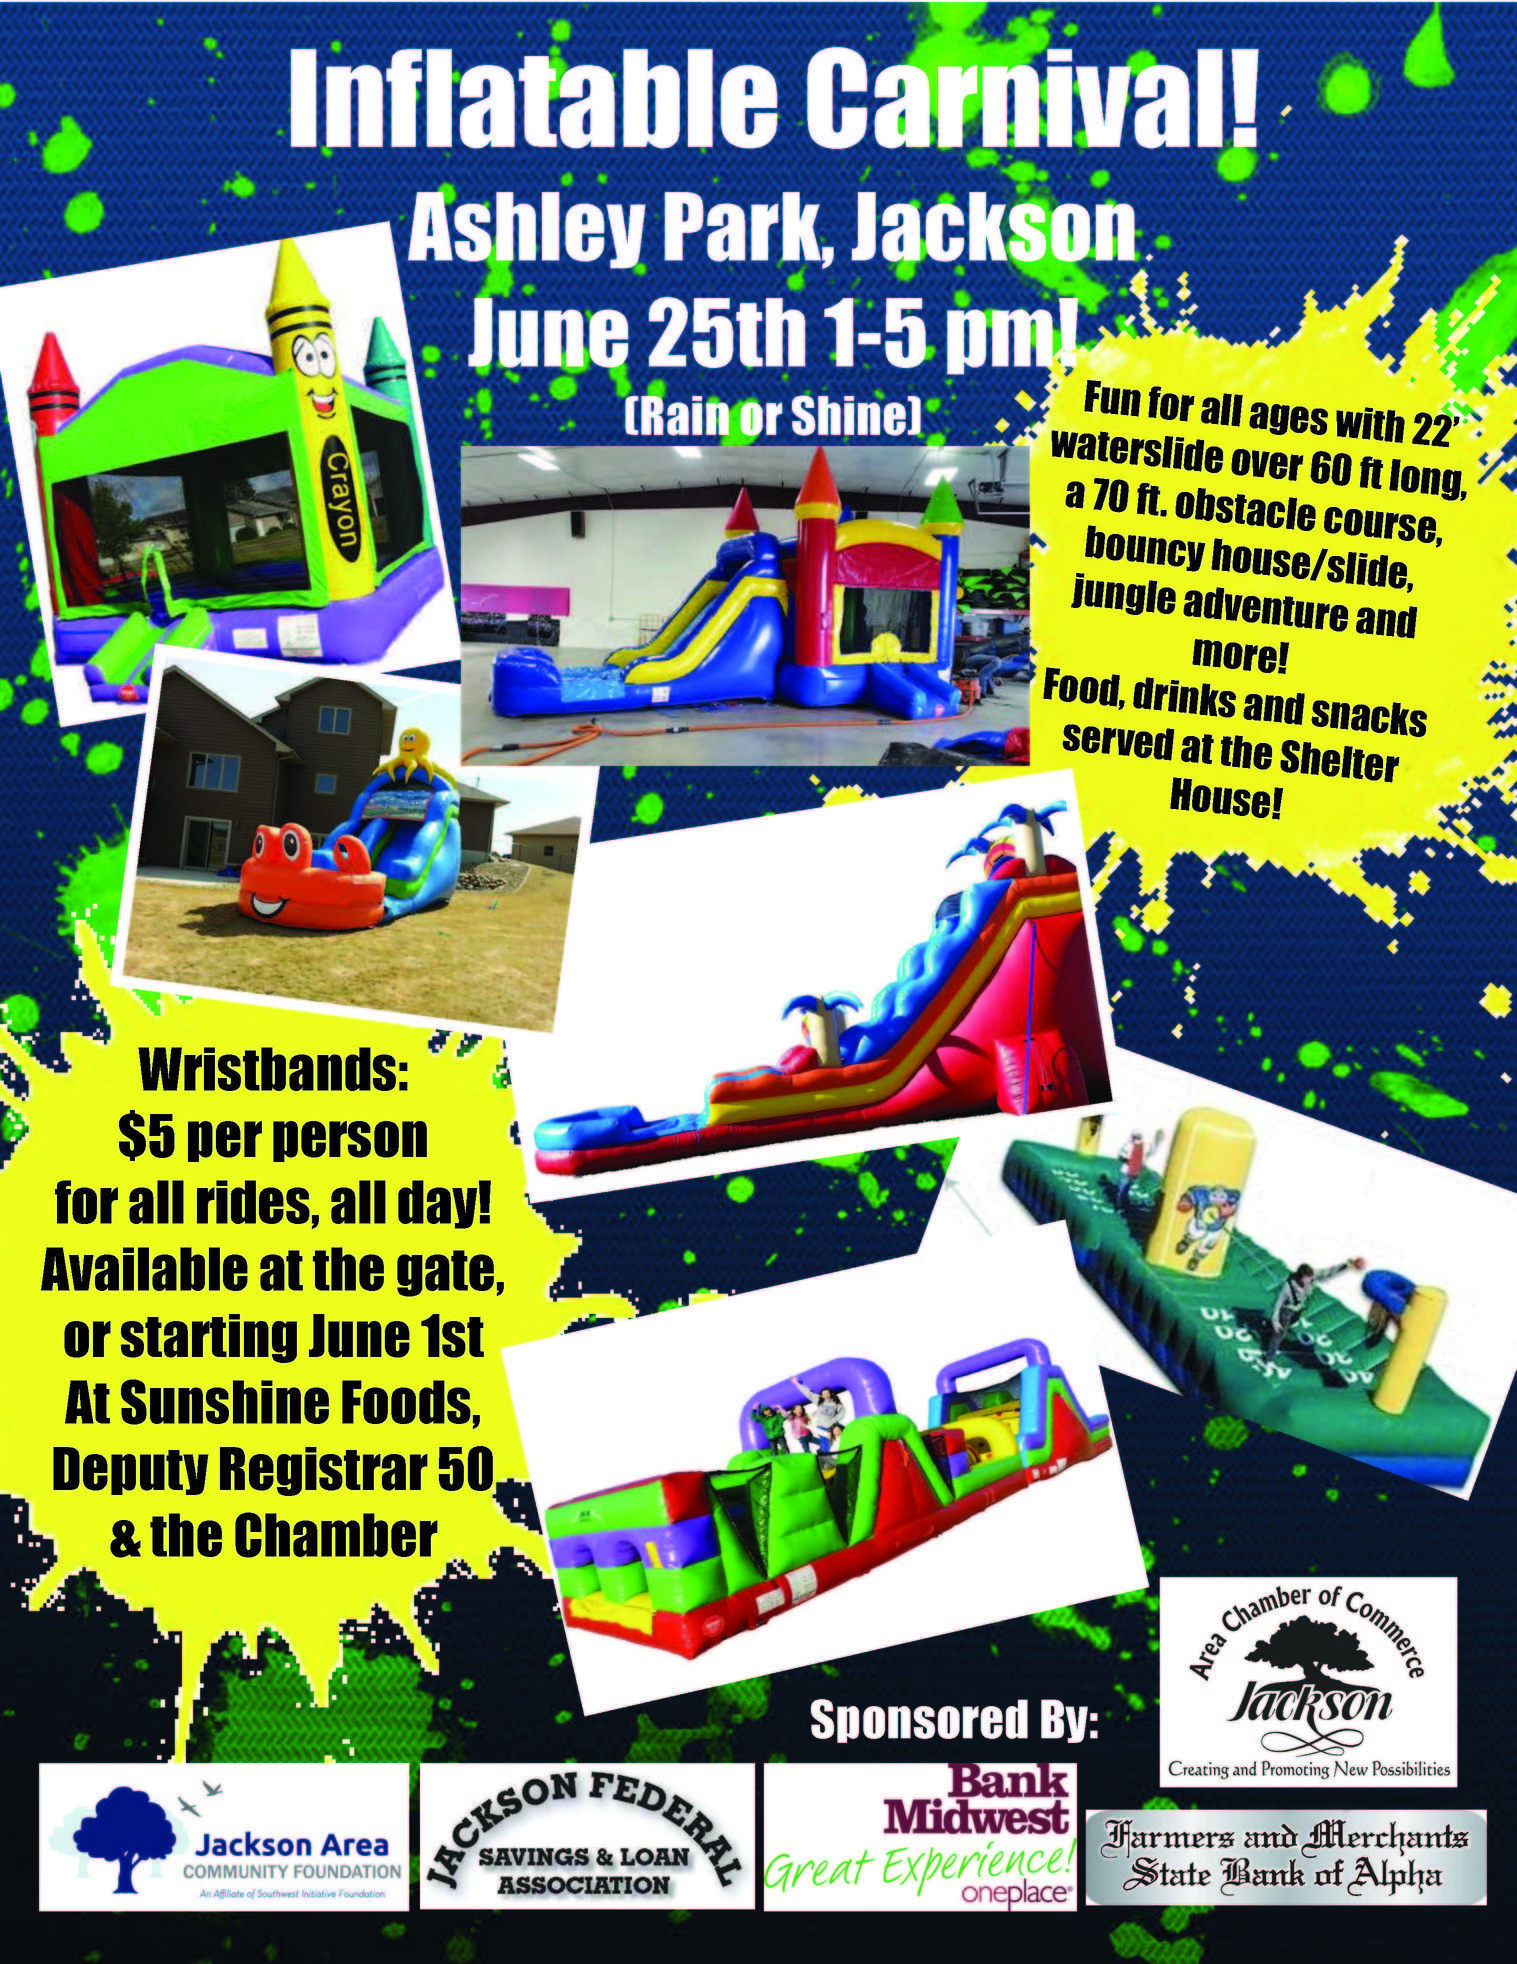 Inflatable_Carnival_Flyer_May_10-w1517-w758.jpg